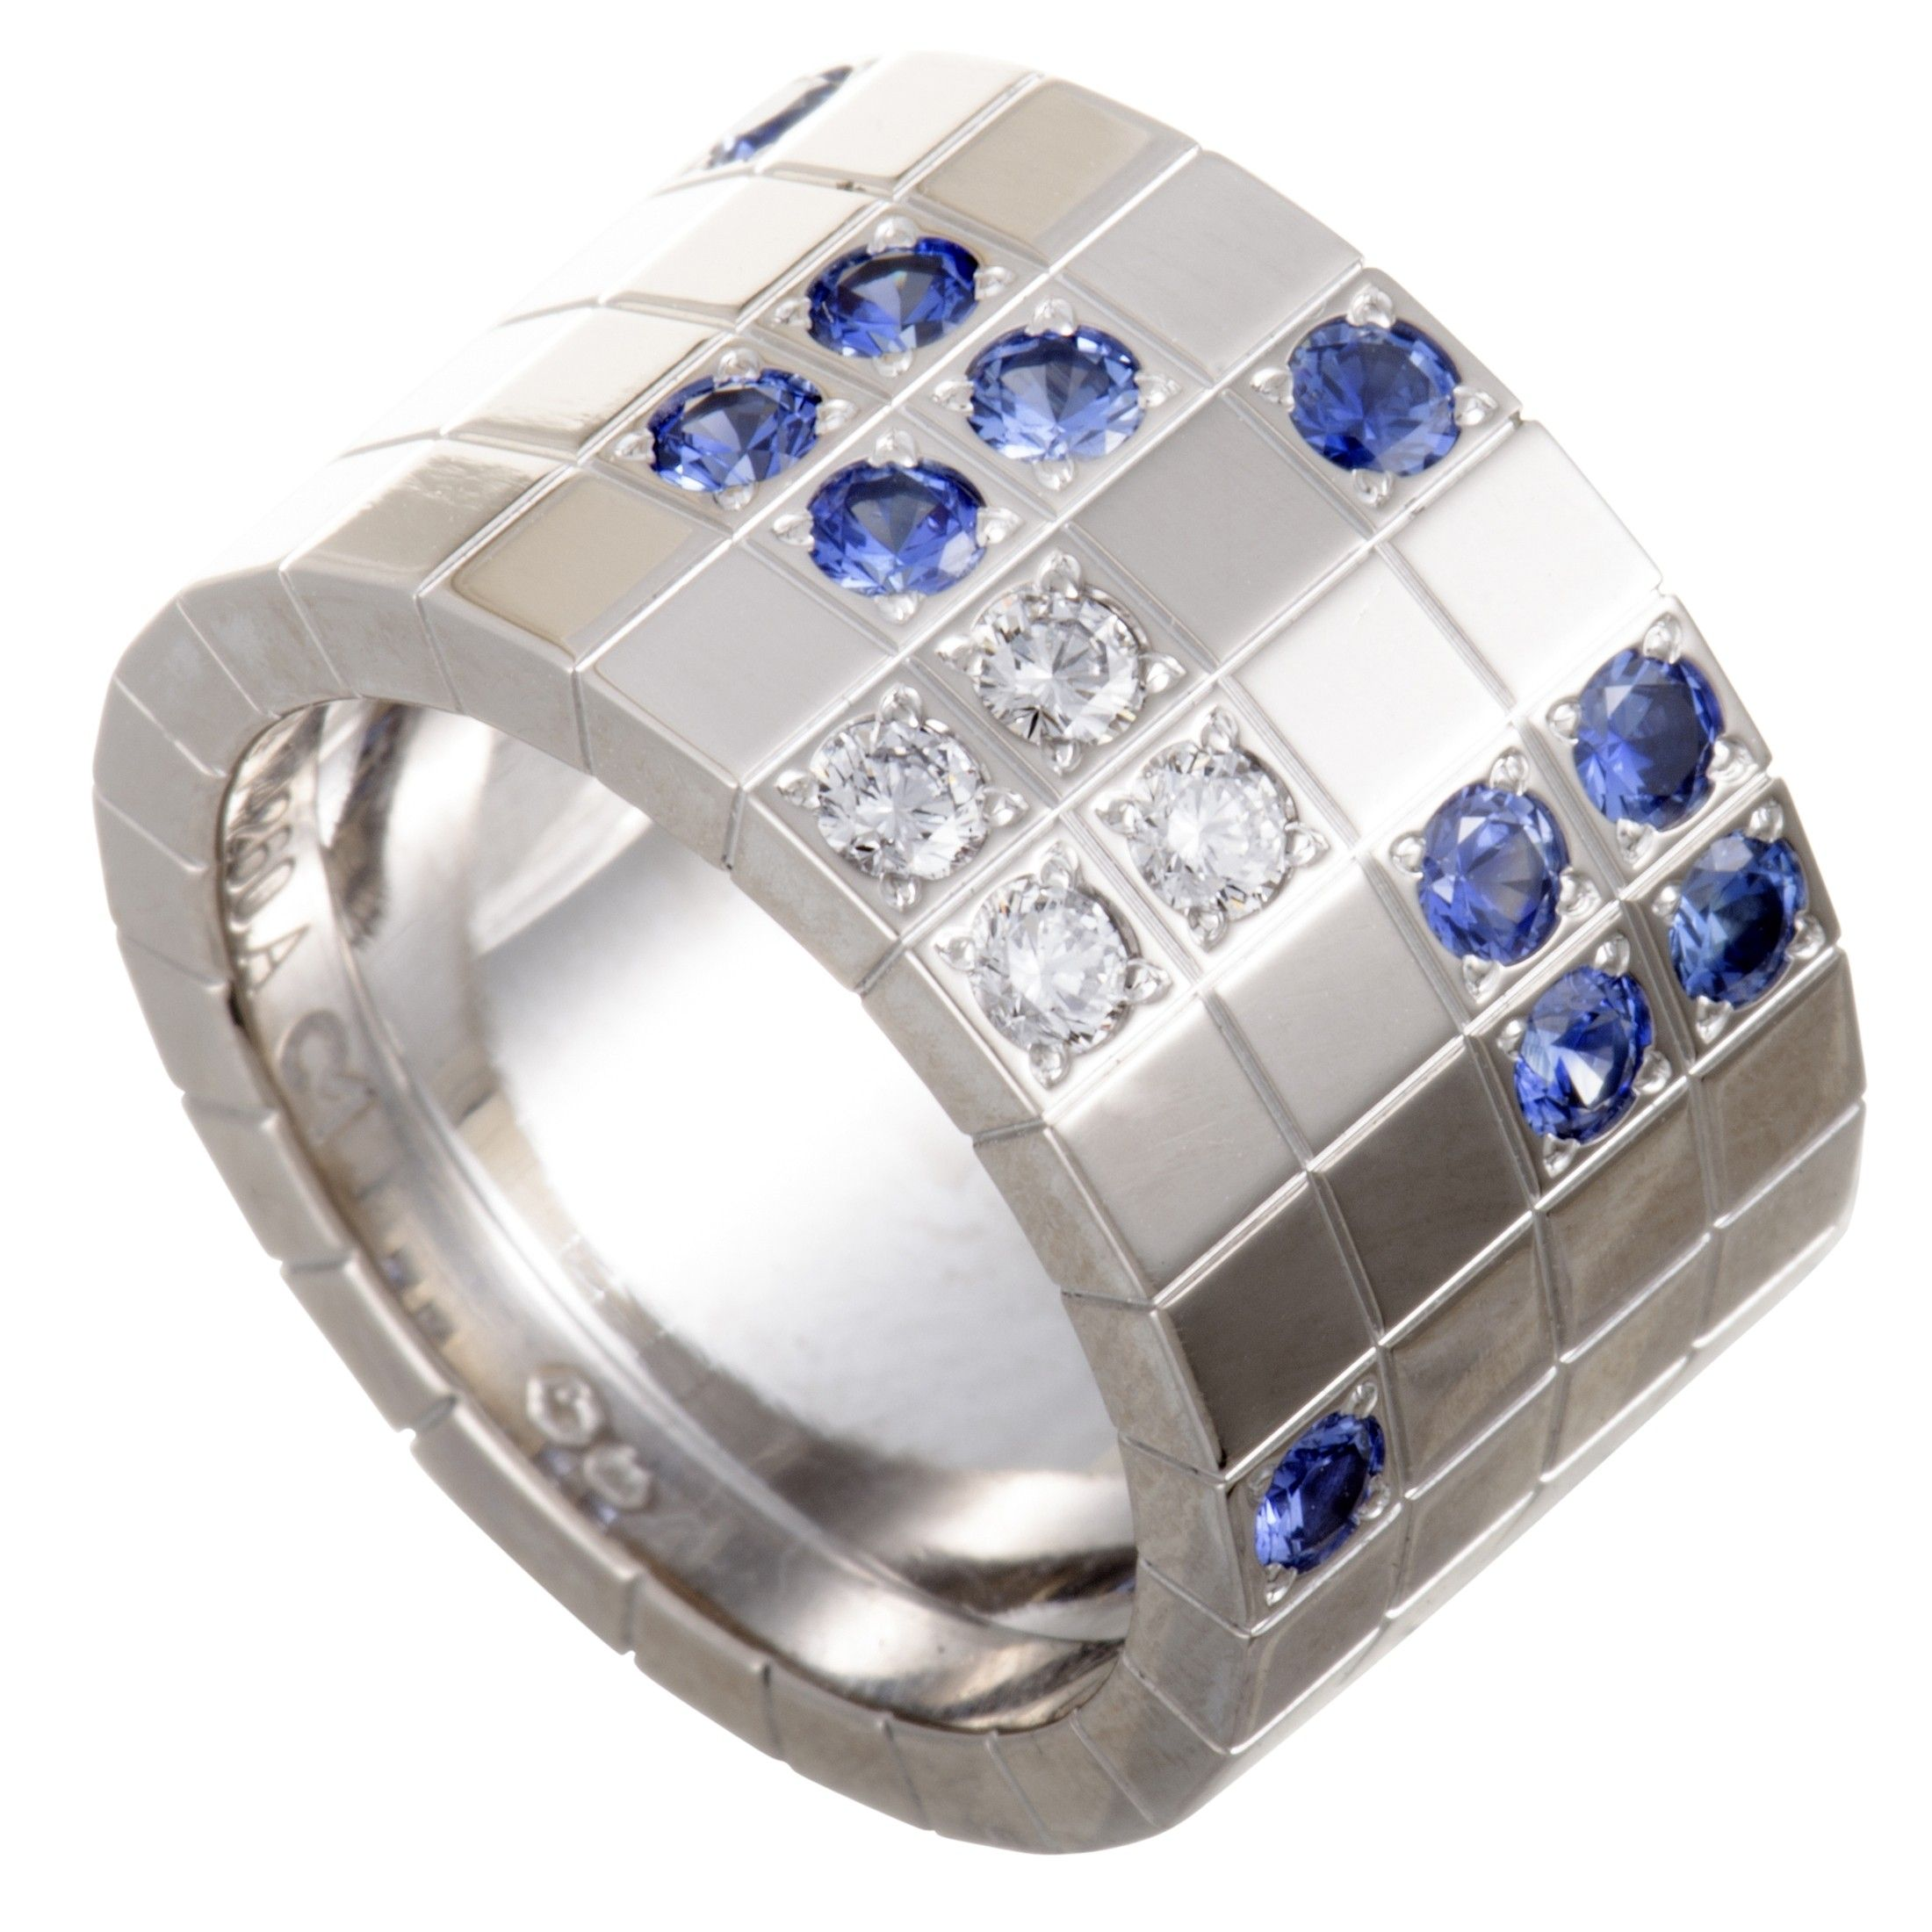 b4fd44c1a8dbb Cartier Lanieres 18K White Gold Diamond and Sapphire Wide Band Ring